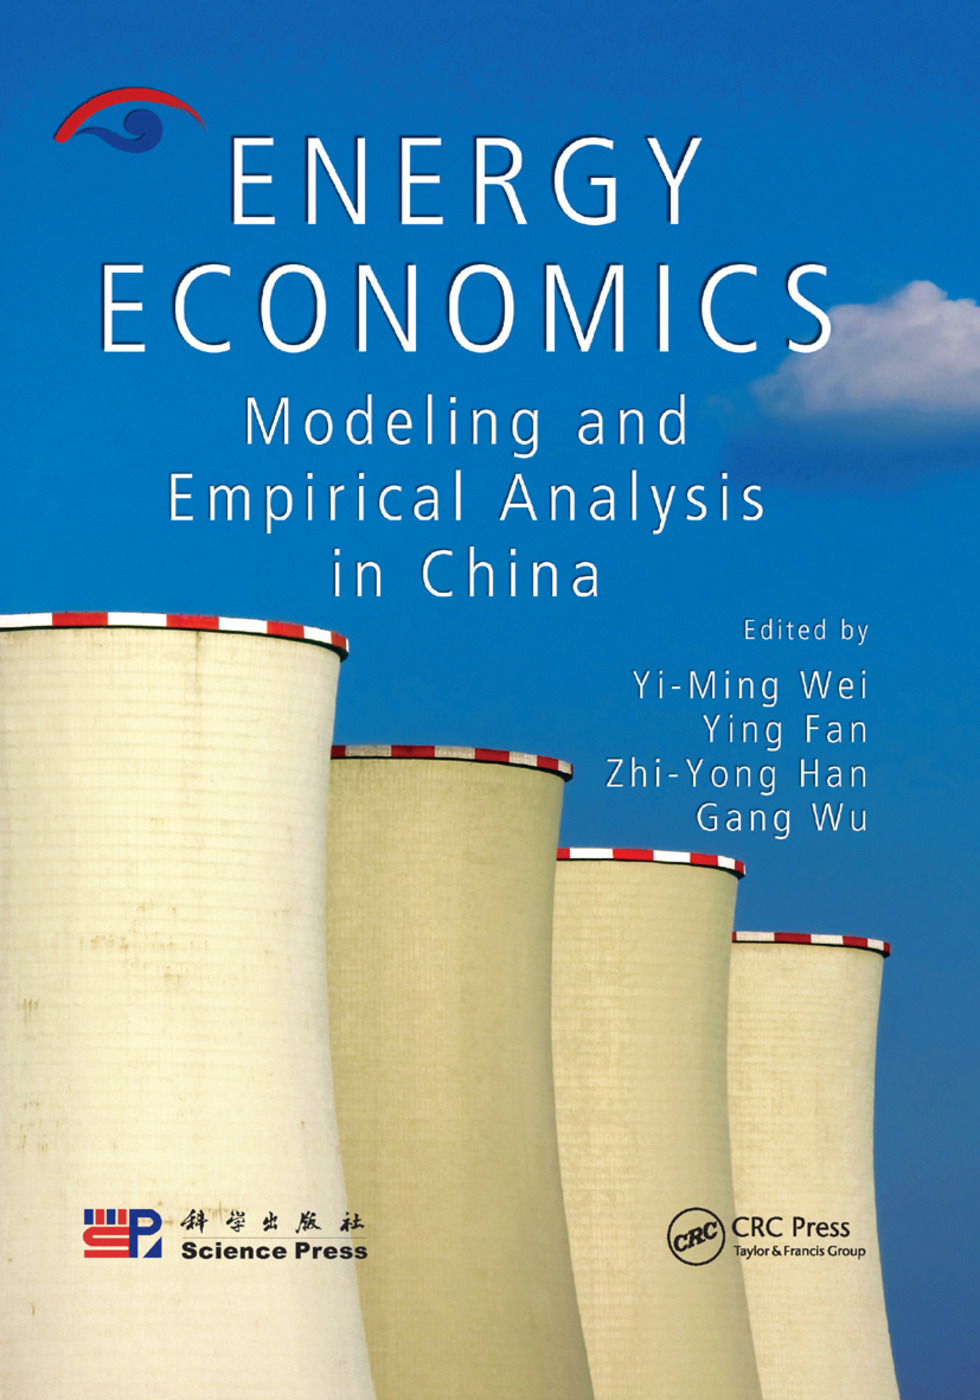 Energy Economics: Modeling and Empirical Analysis in China book cover